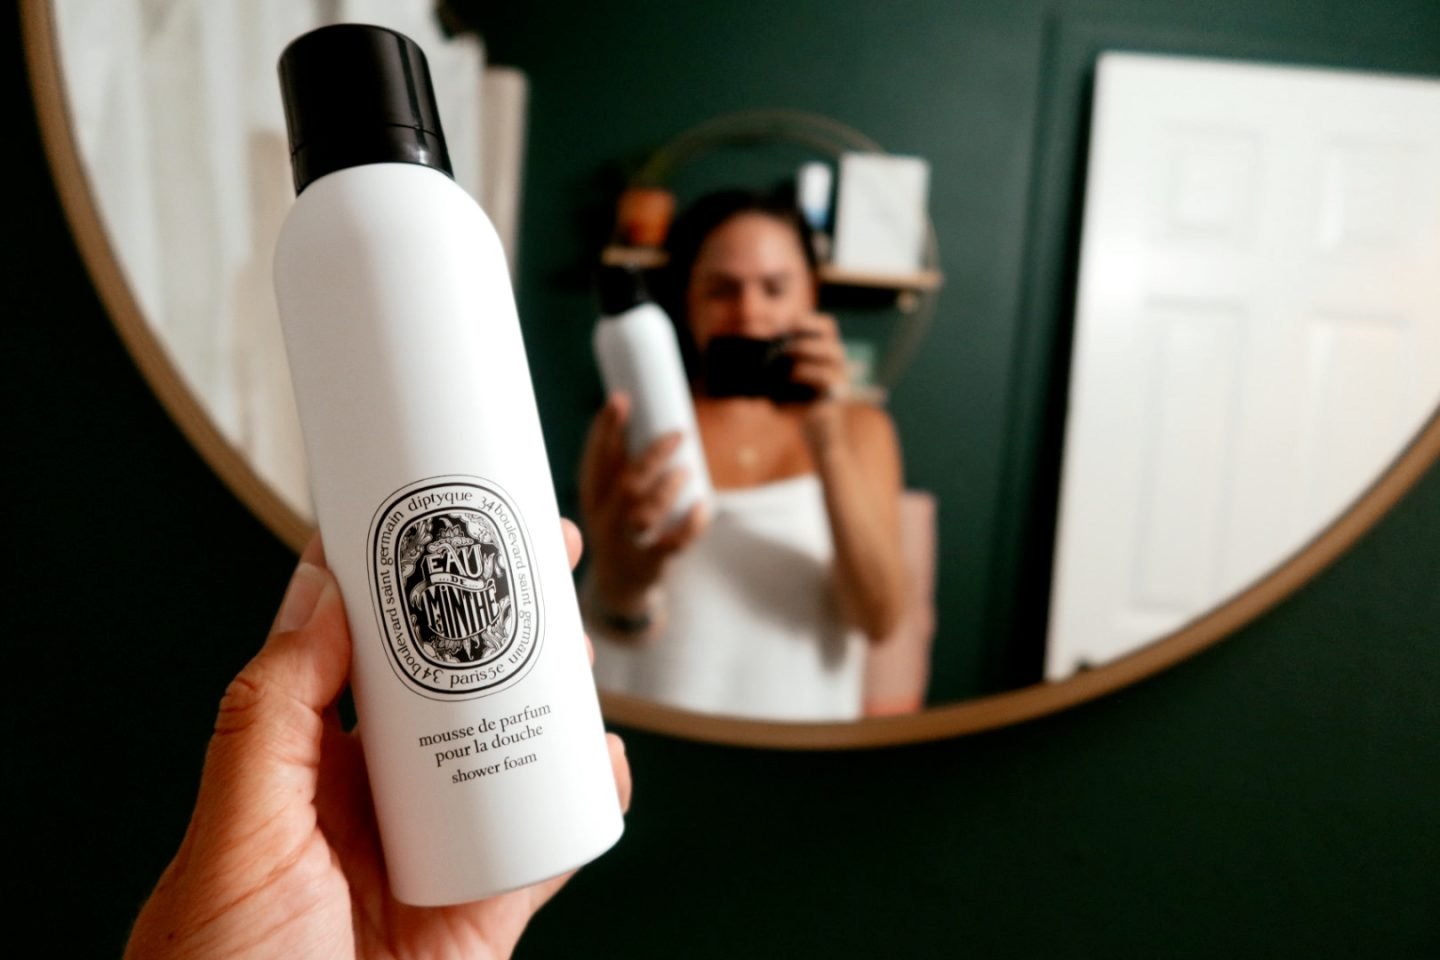 diptyque shower foam